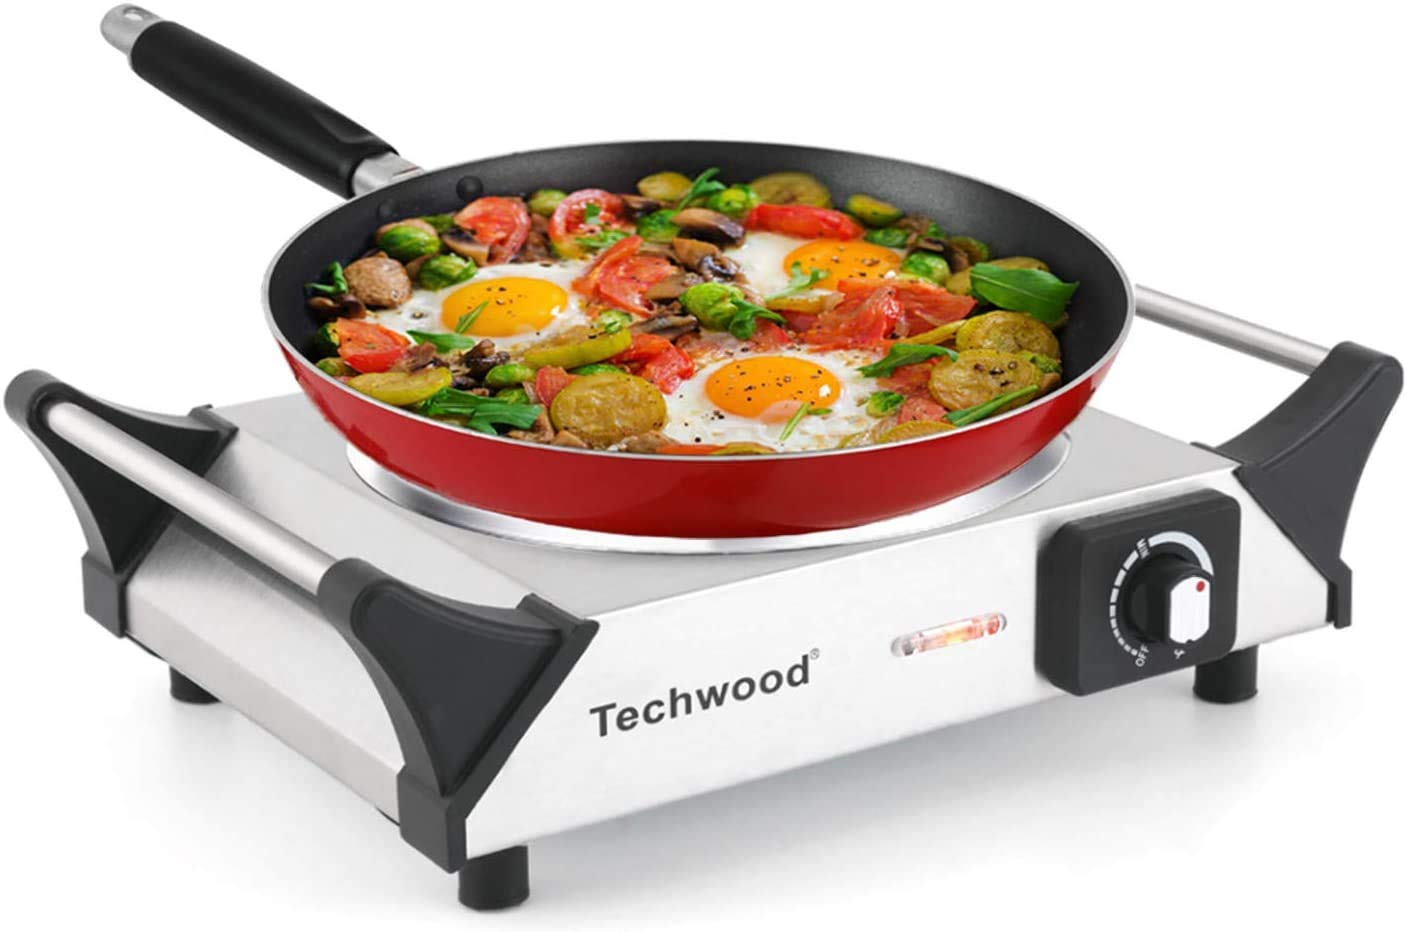 Techwood Hot Plate Electric Stove 1200W Countertop Infrared Ceramic Single Burner with